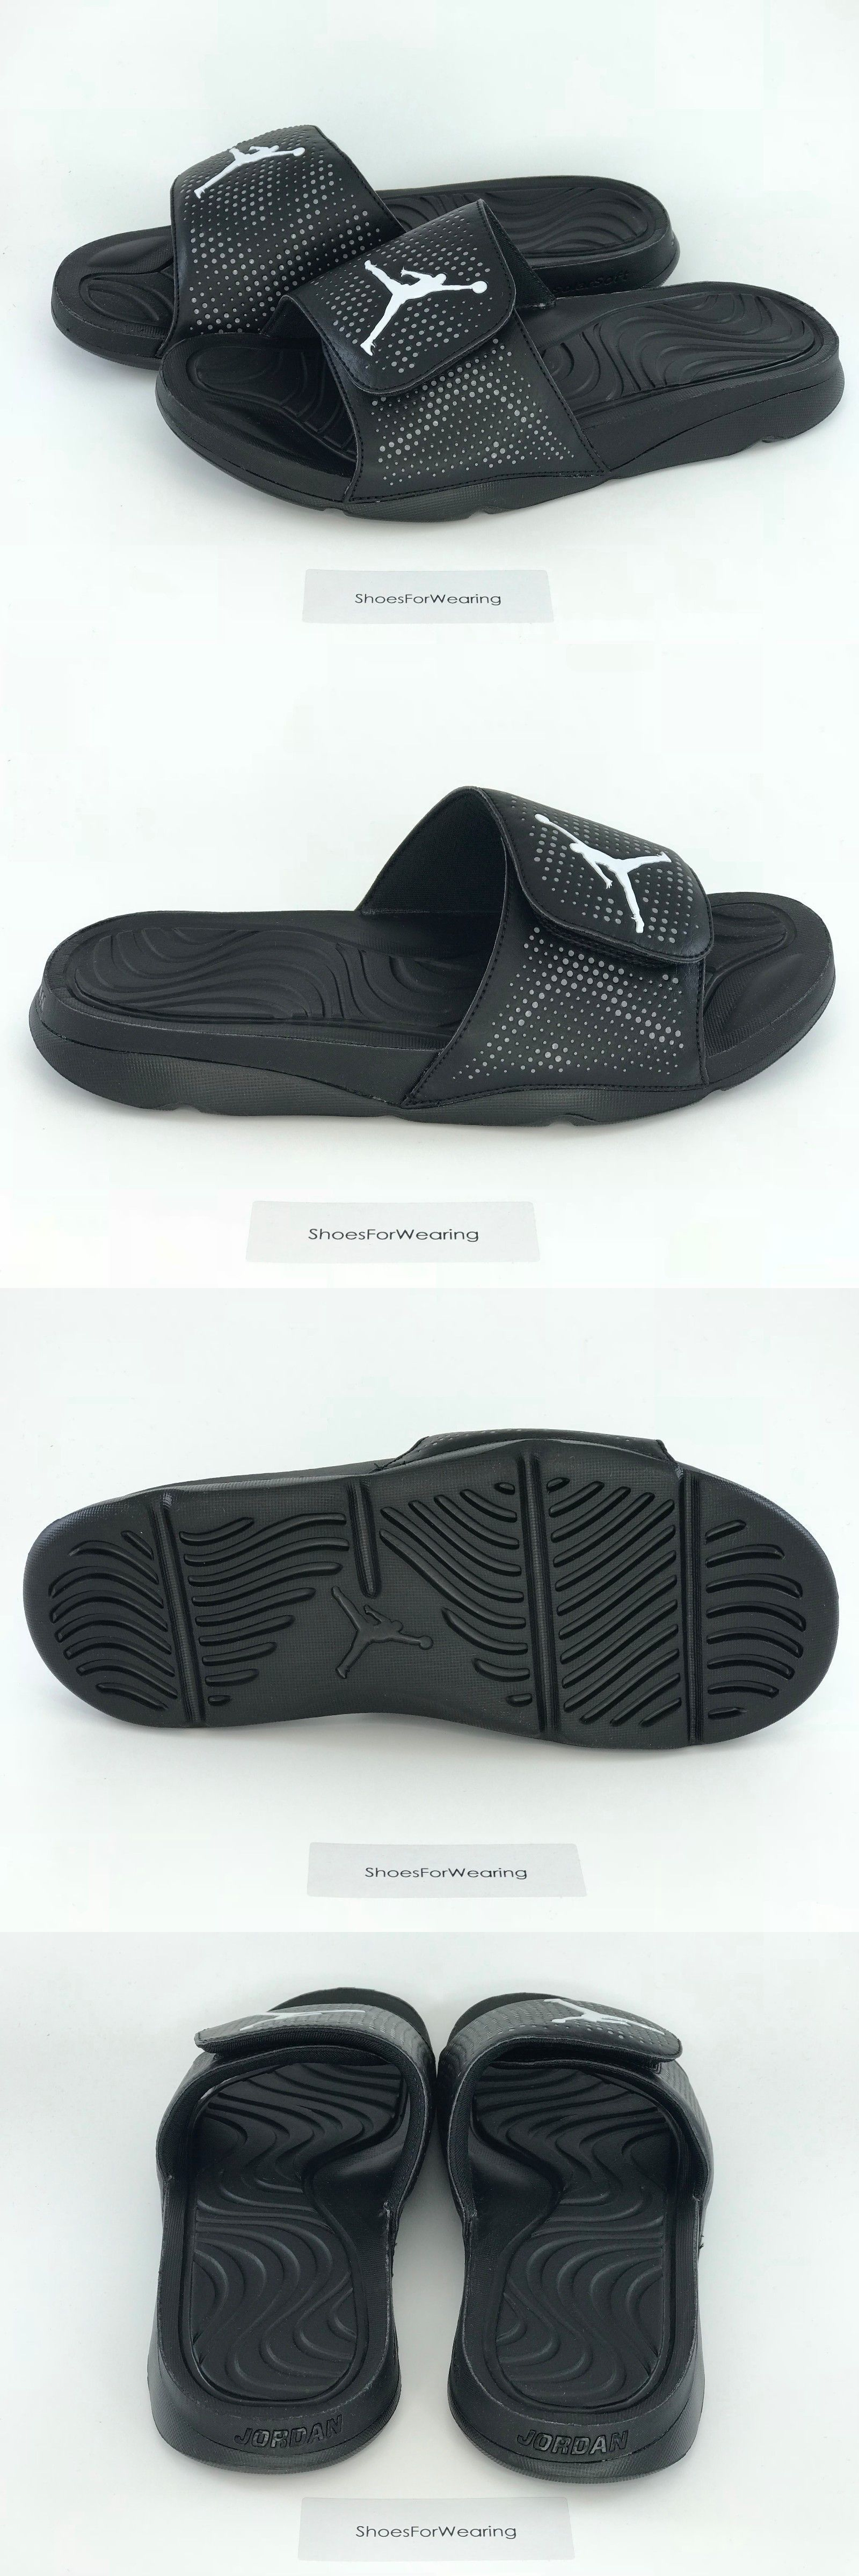 628c6649455c53 Sandals and Flip Flops 11504  Nike Mens Jordan Hydro 5 820257-010 Size